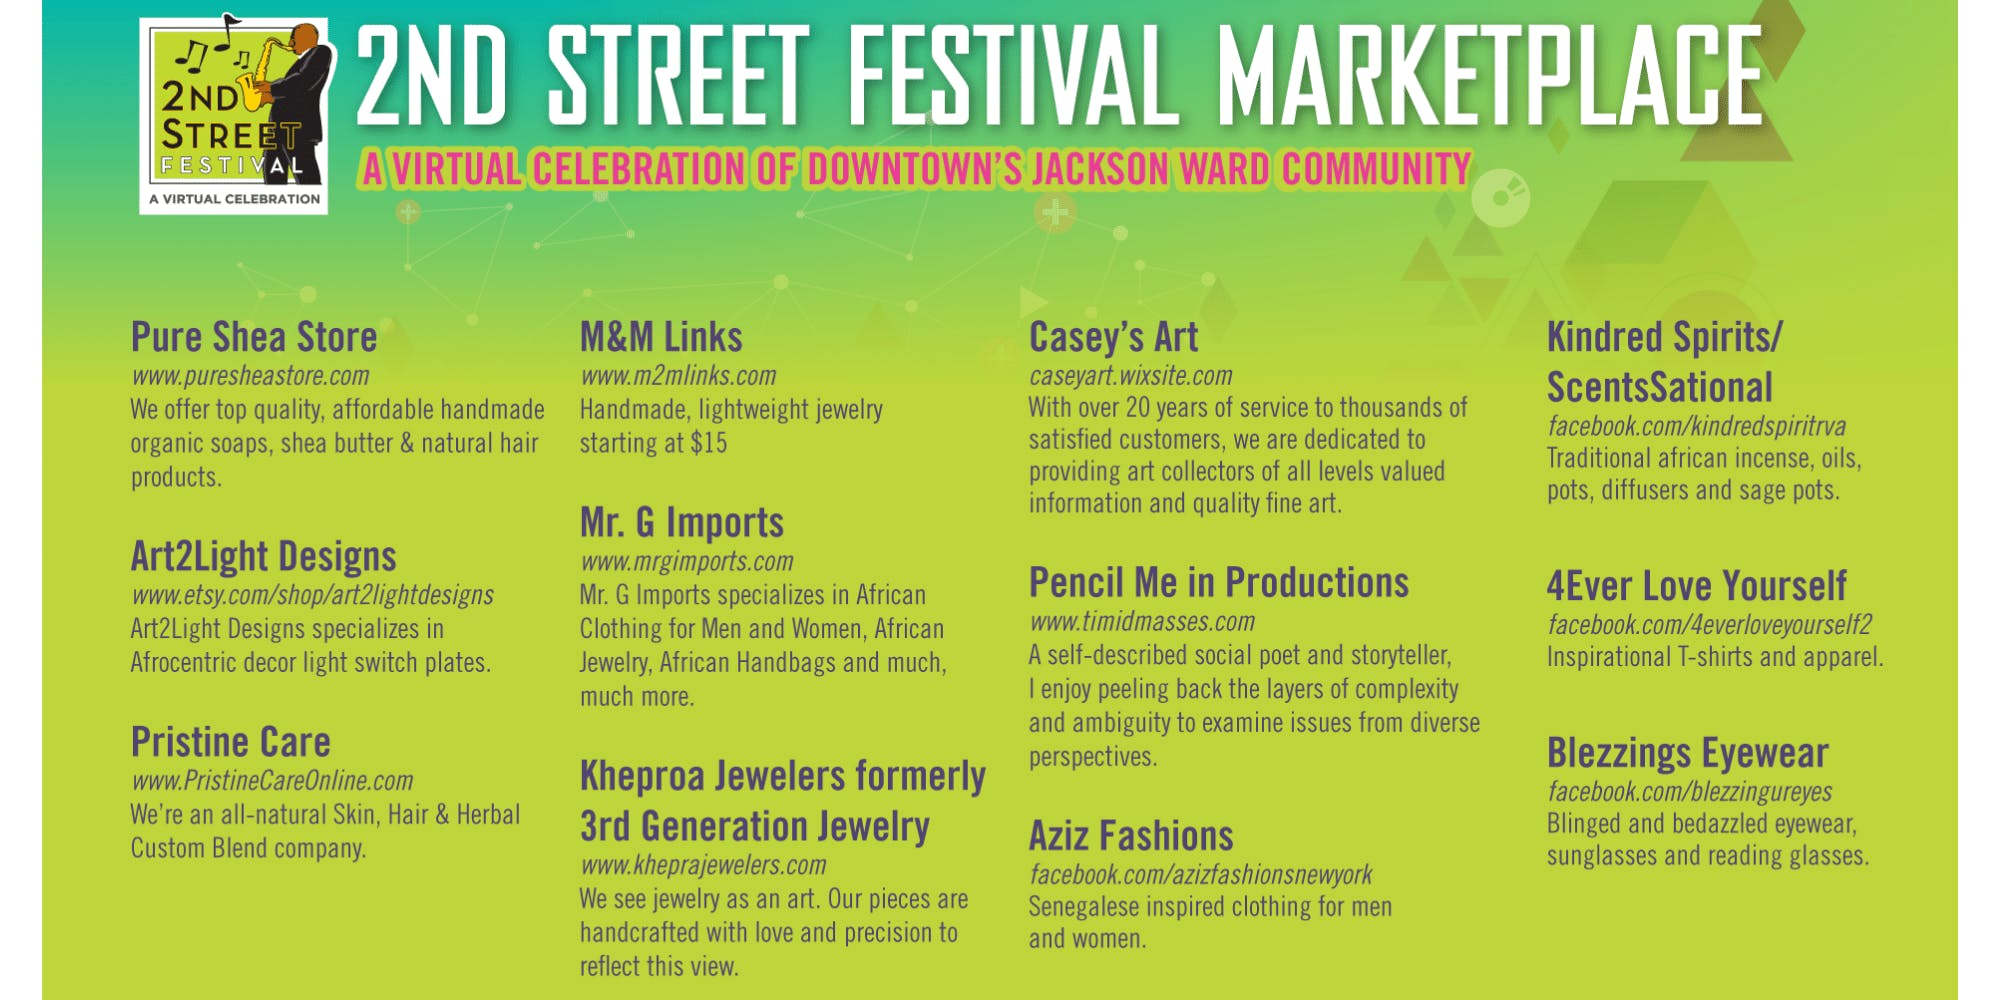 2nd Street Festival Virtual Marketplace 2020